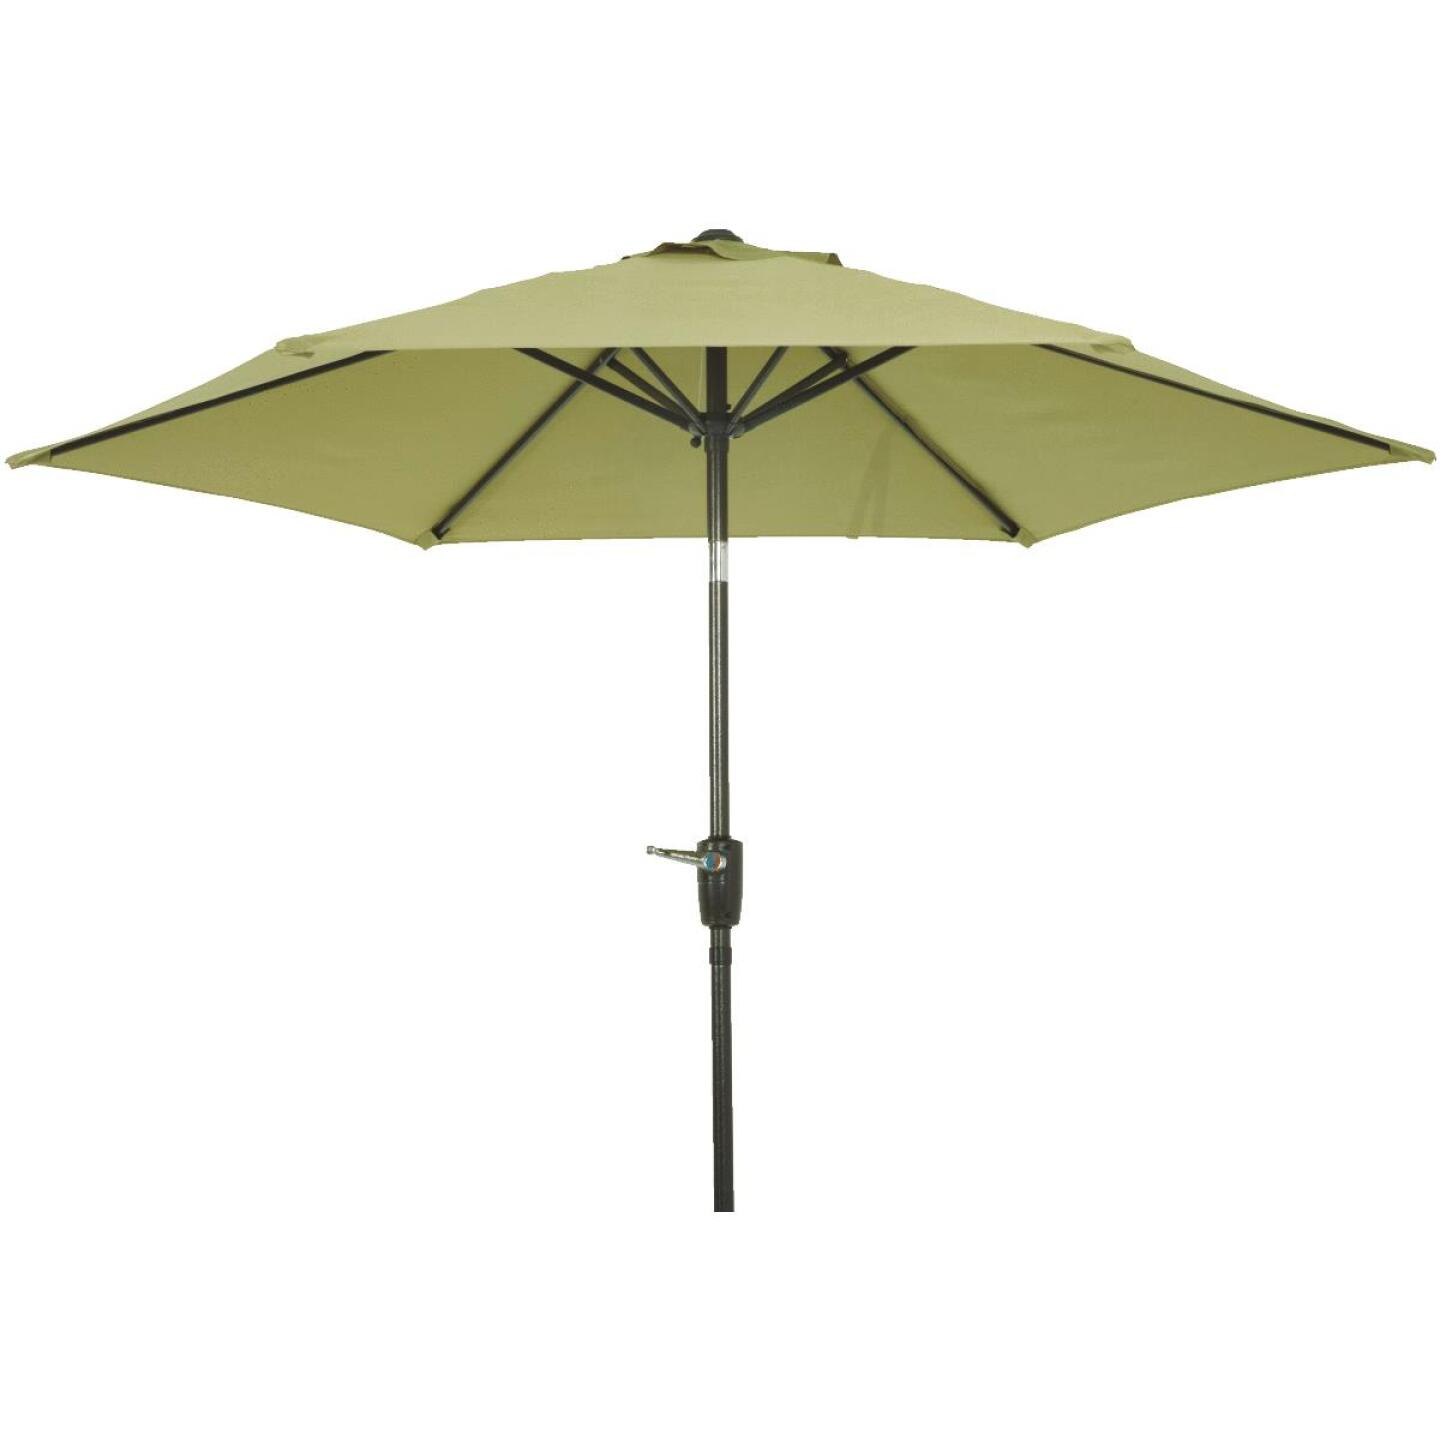 Outdoor Expressions 7.5 Ft. Aluminum Tilt/Crank Sage Patio Umbrella Image 3